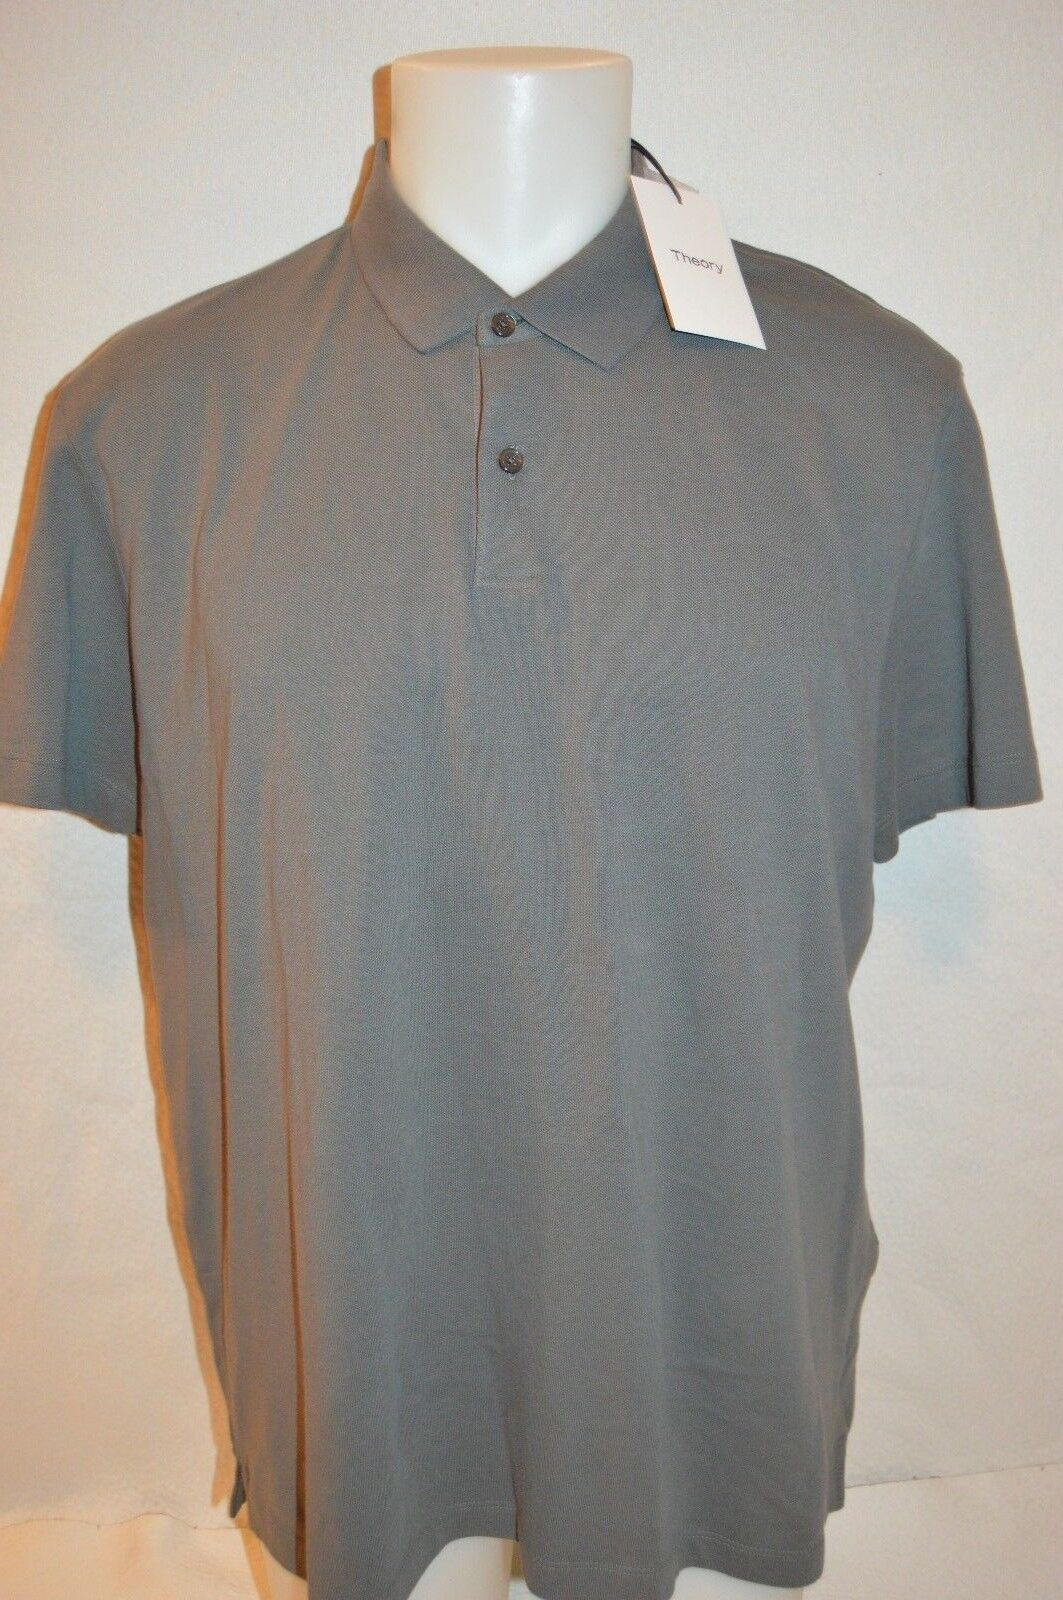 THEORY Man's SANDHURST Button Up Polo T-Shirt  NEW  Größe X-Large  Retail 95